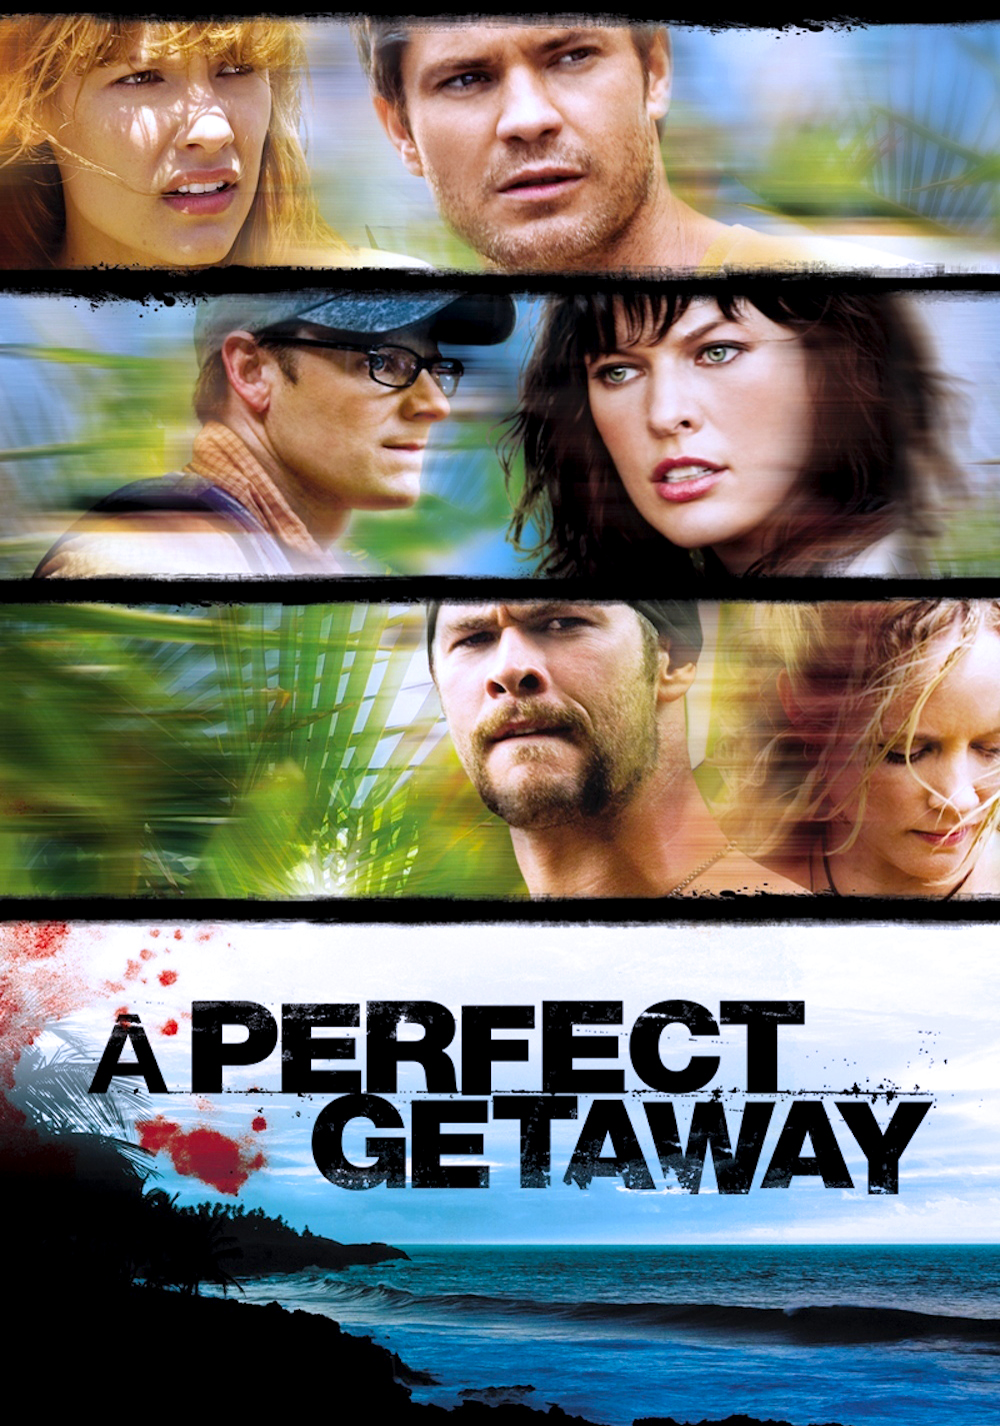 A.Perfect.Getaway.2009.UNRATED.DC.German.AC3D.DL.1080p.CA.BluRay.x265-FuN